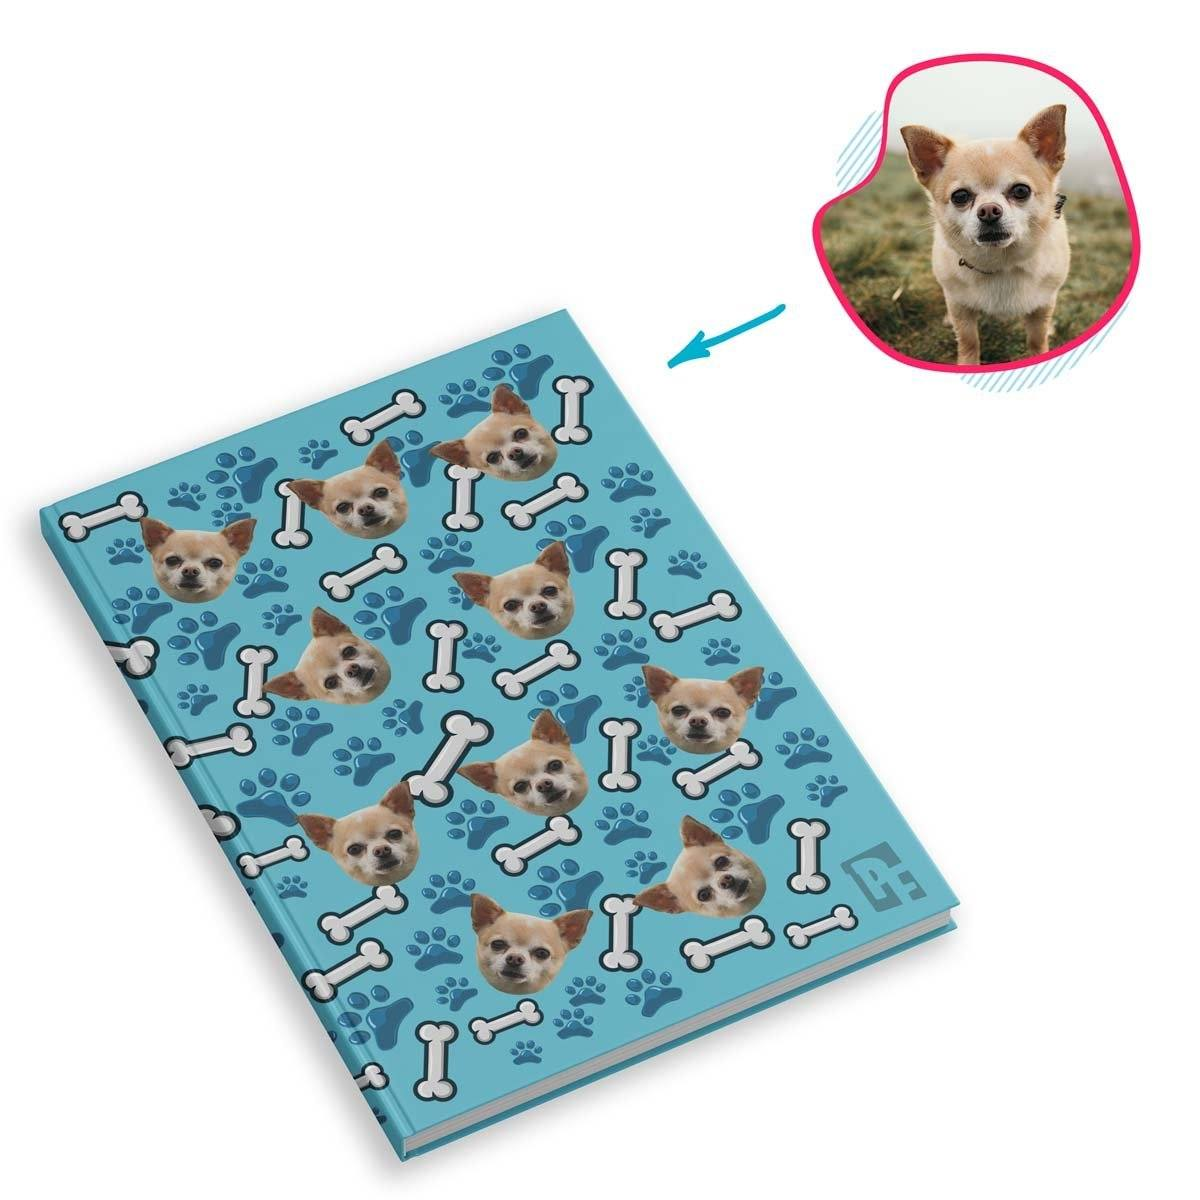 Dog Personalized Journal